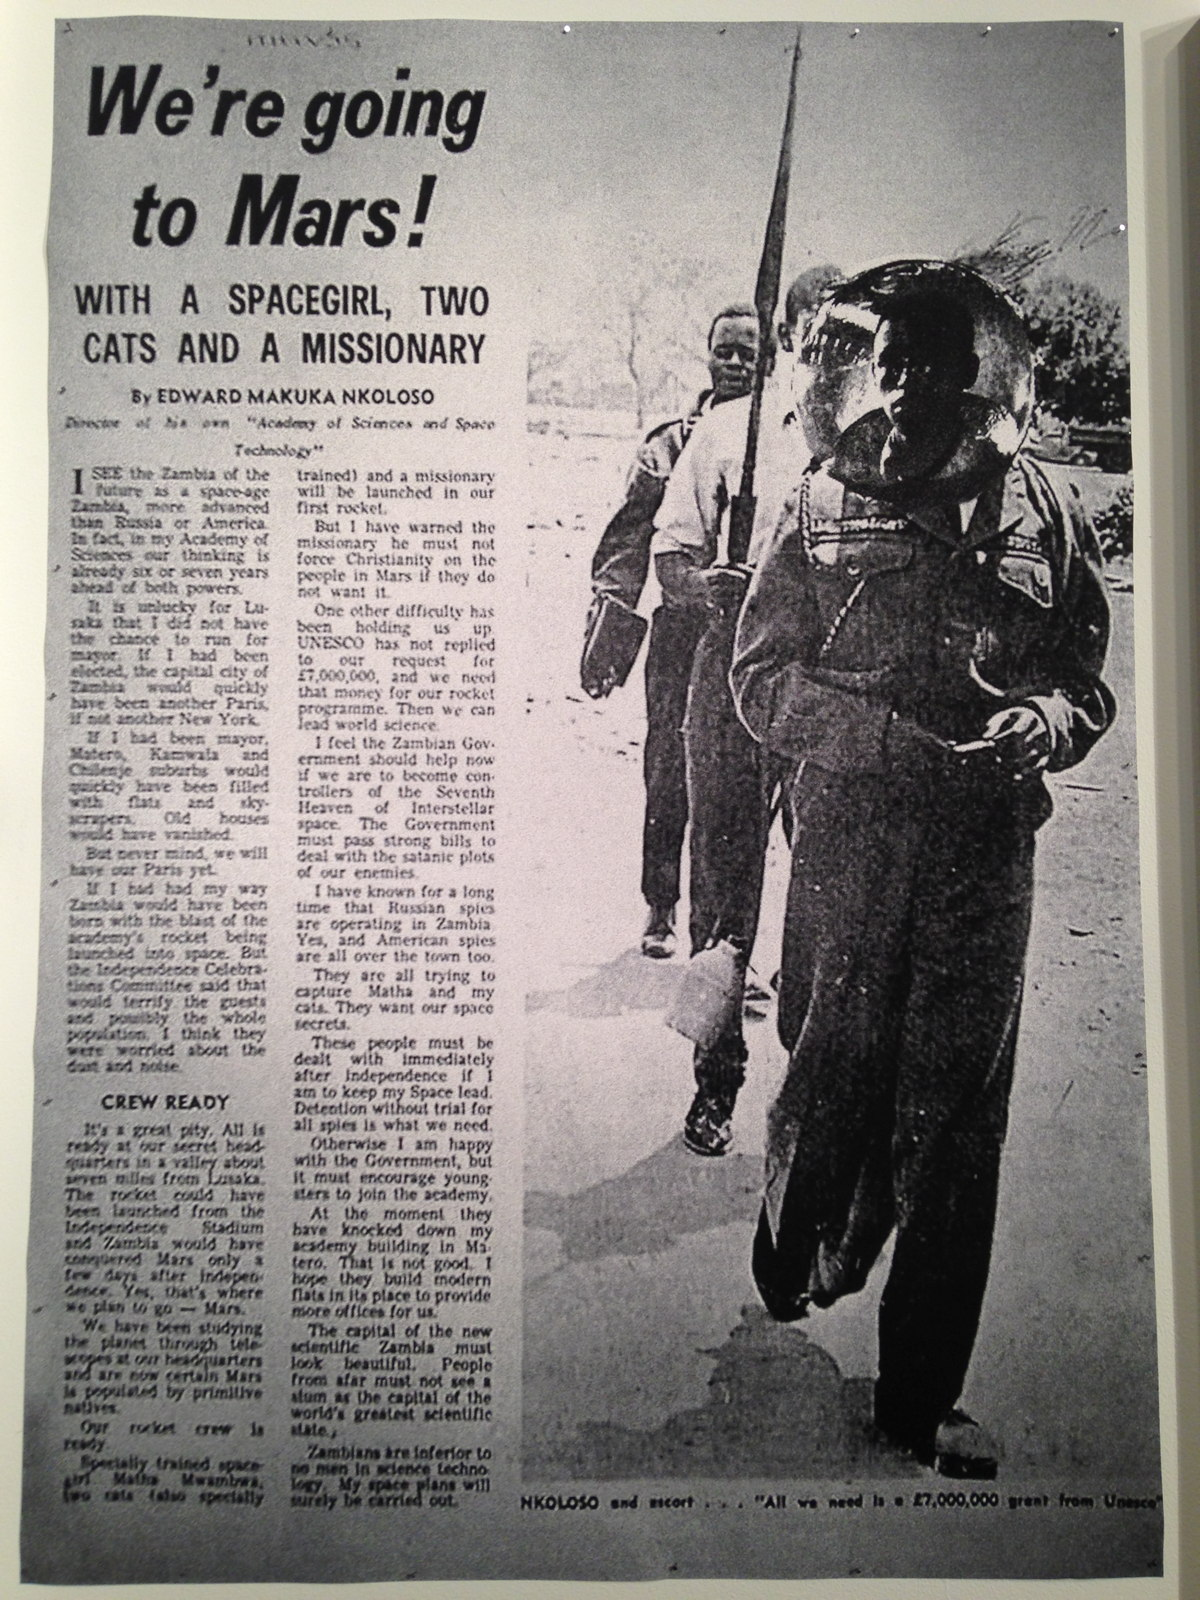 'The Afronauts' Newspaper Article